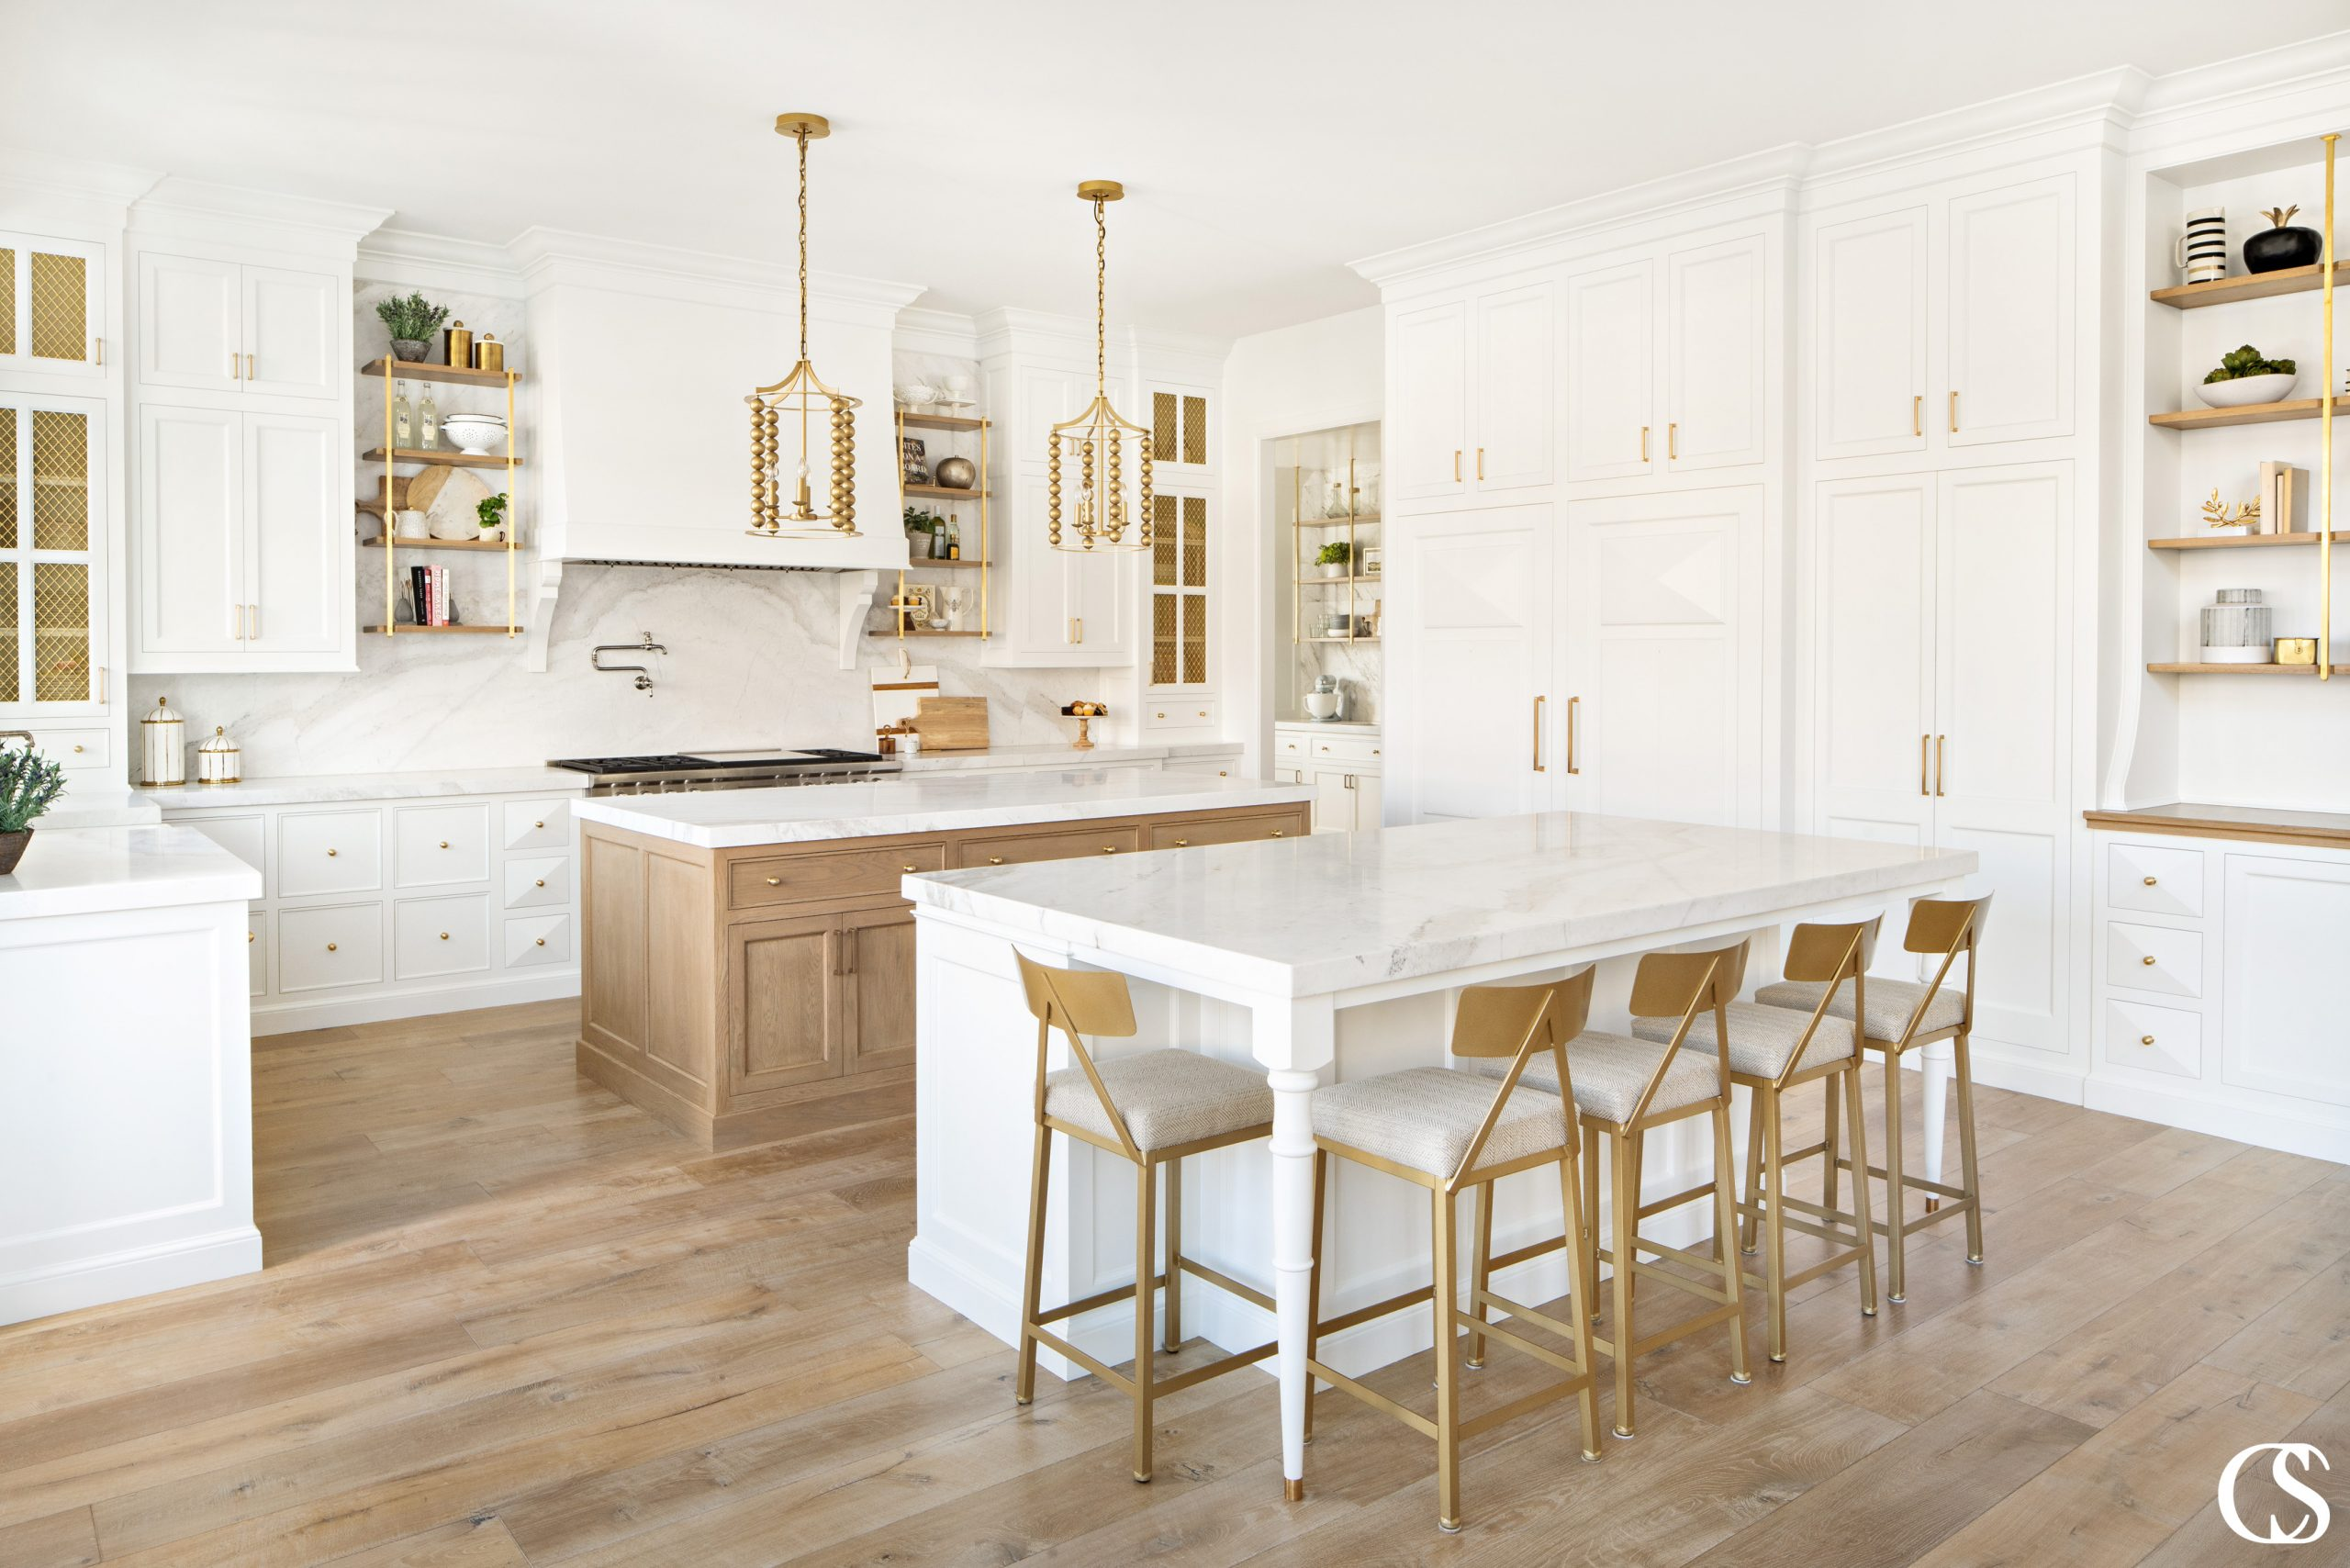 Open shelving, mullioned cupboards, hidden refrigerators, and a double island set up all come together in some of the best custom cabinet design for a kitchen.